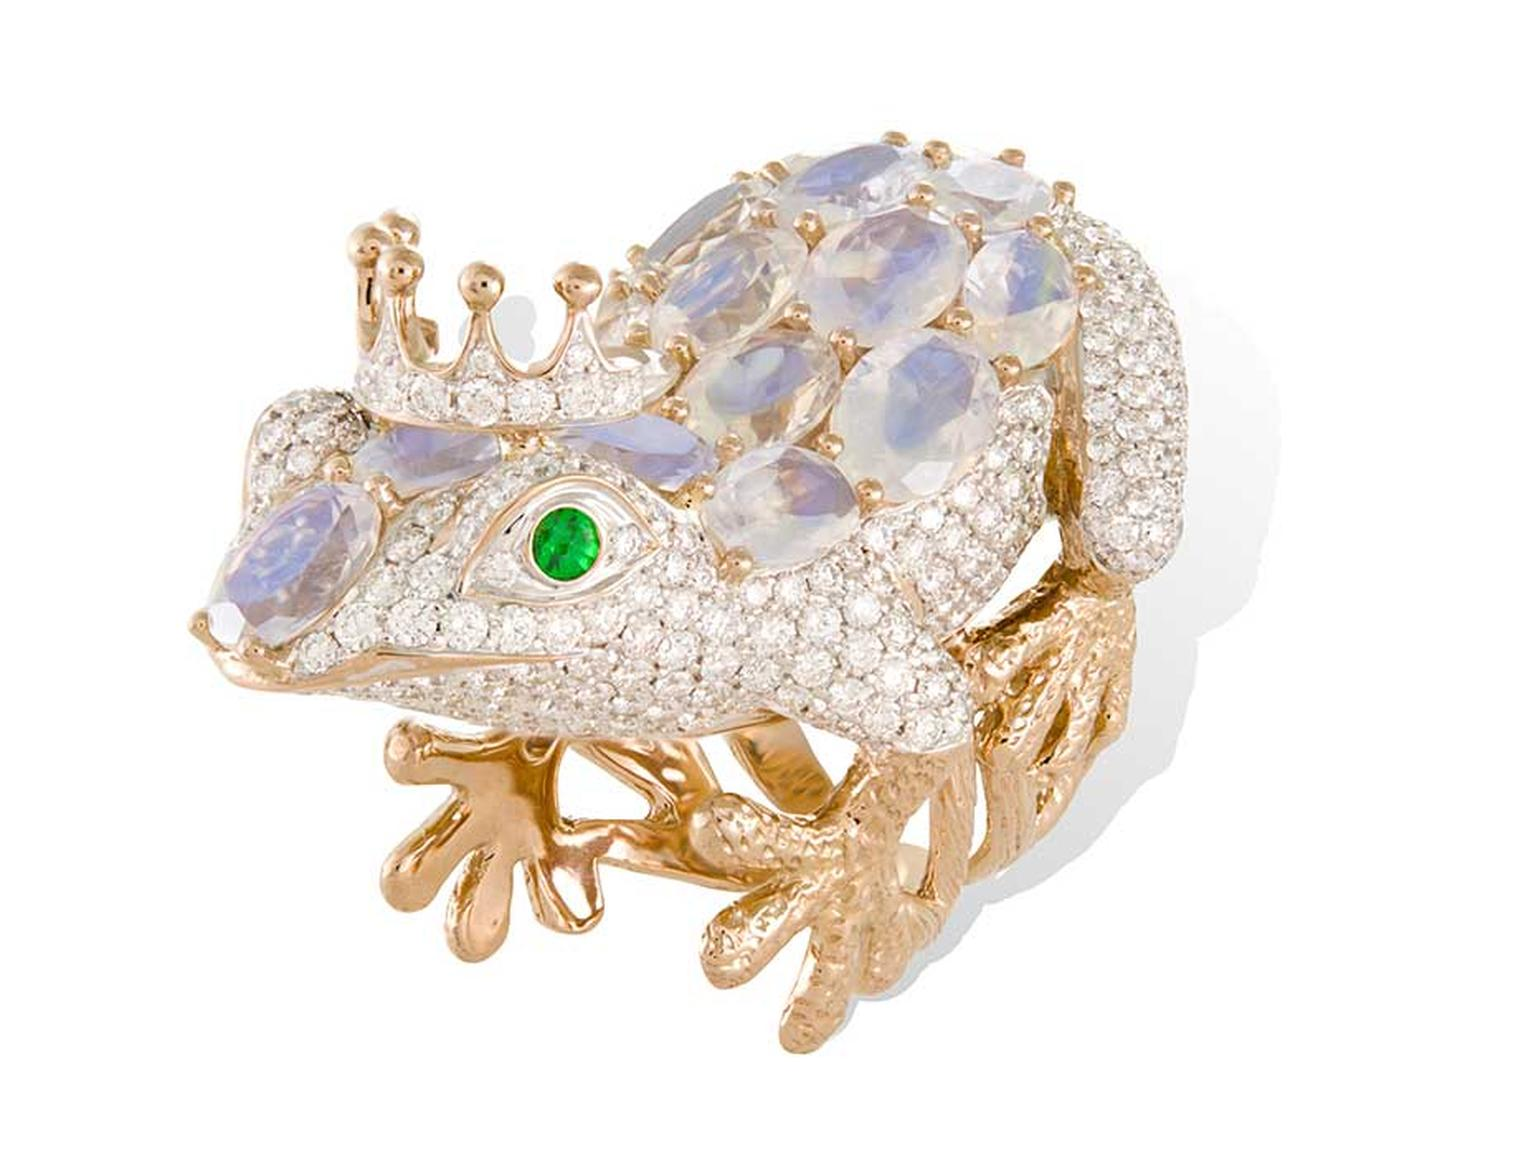 Lydia Courteille Frog ring in gold with diamonds, moonstones and emeralds for eyes.